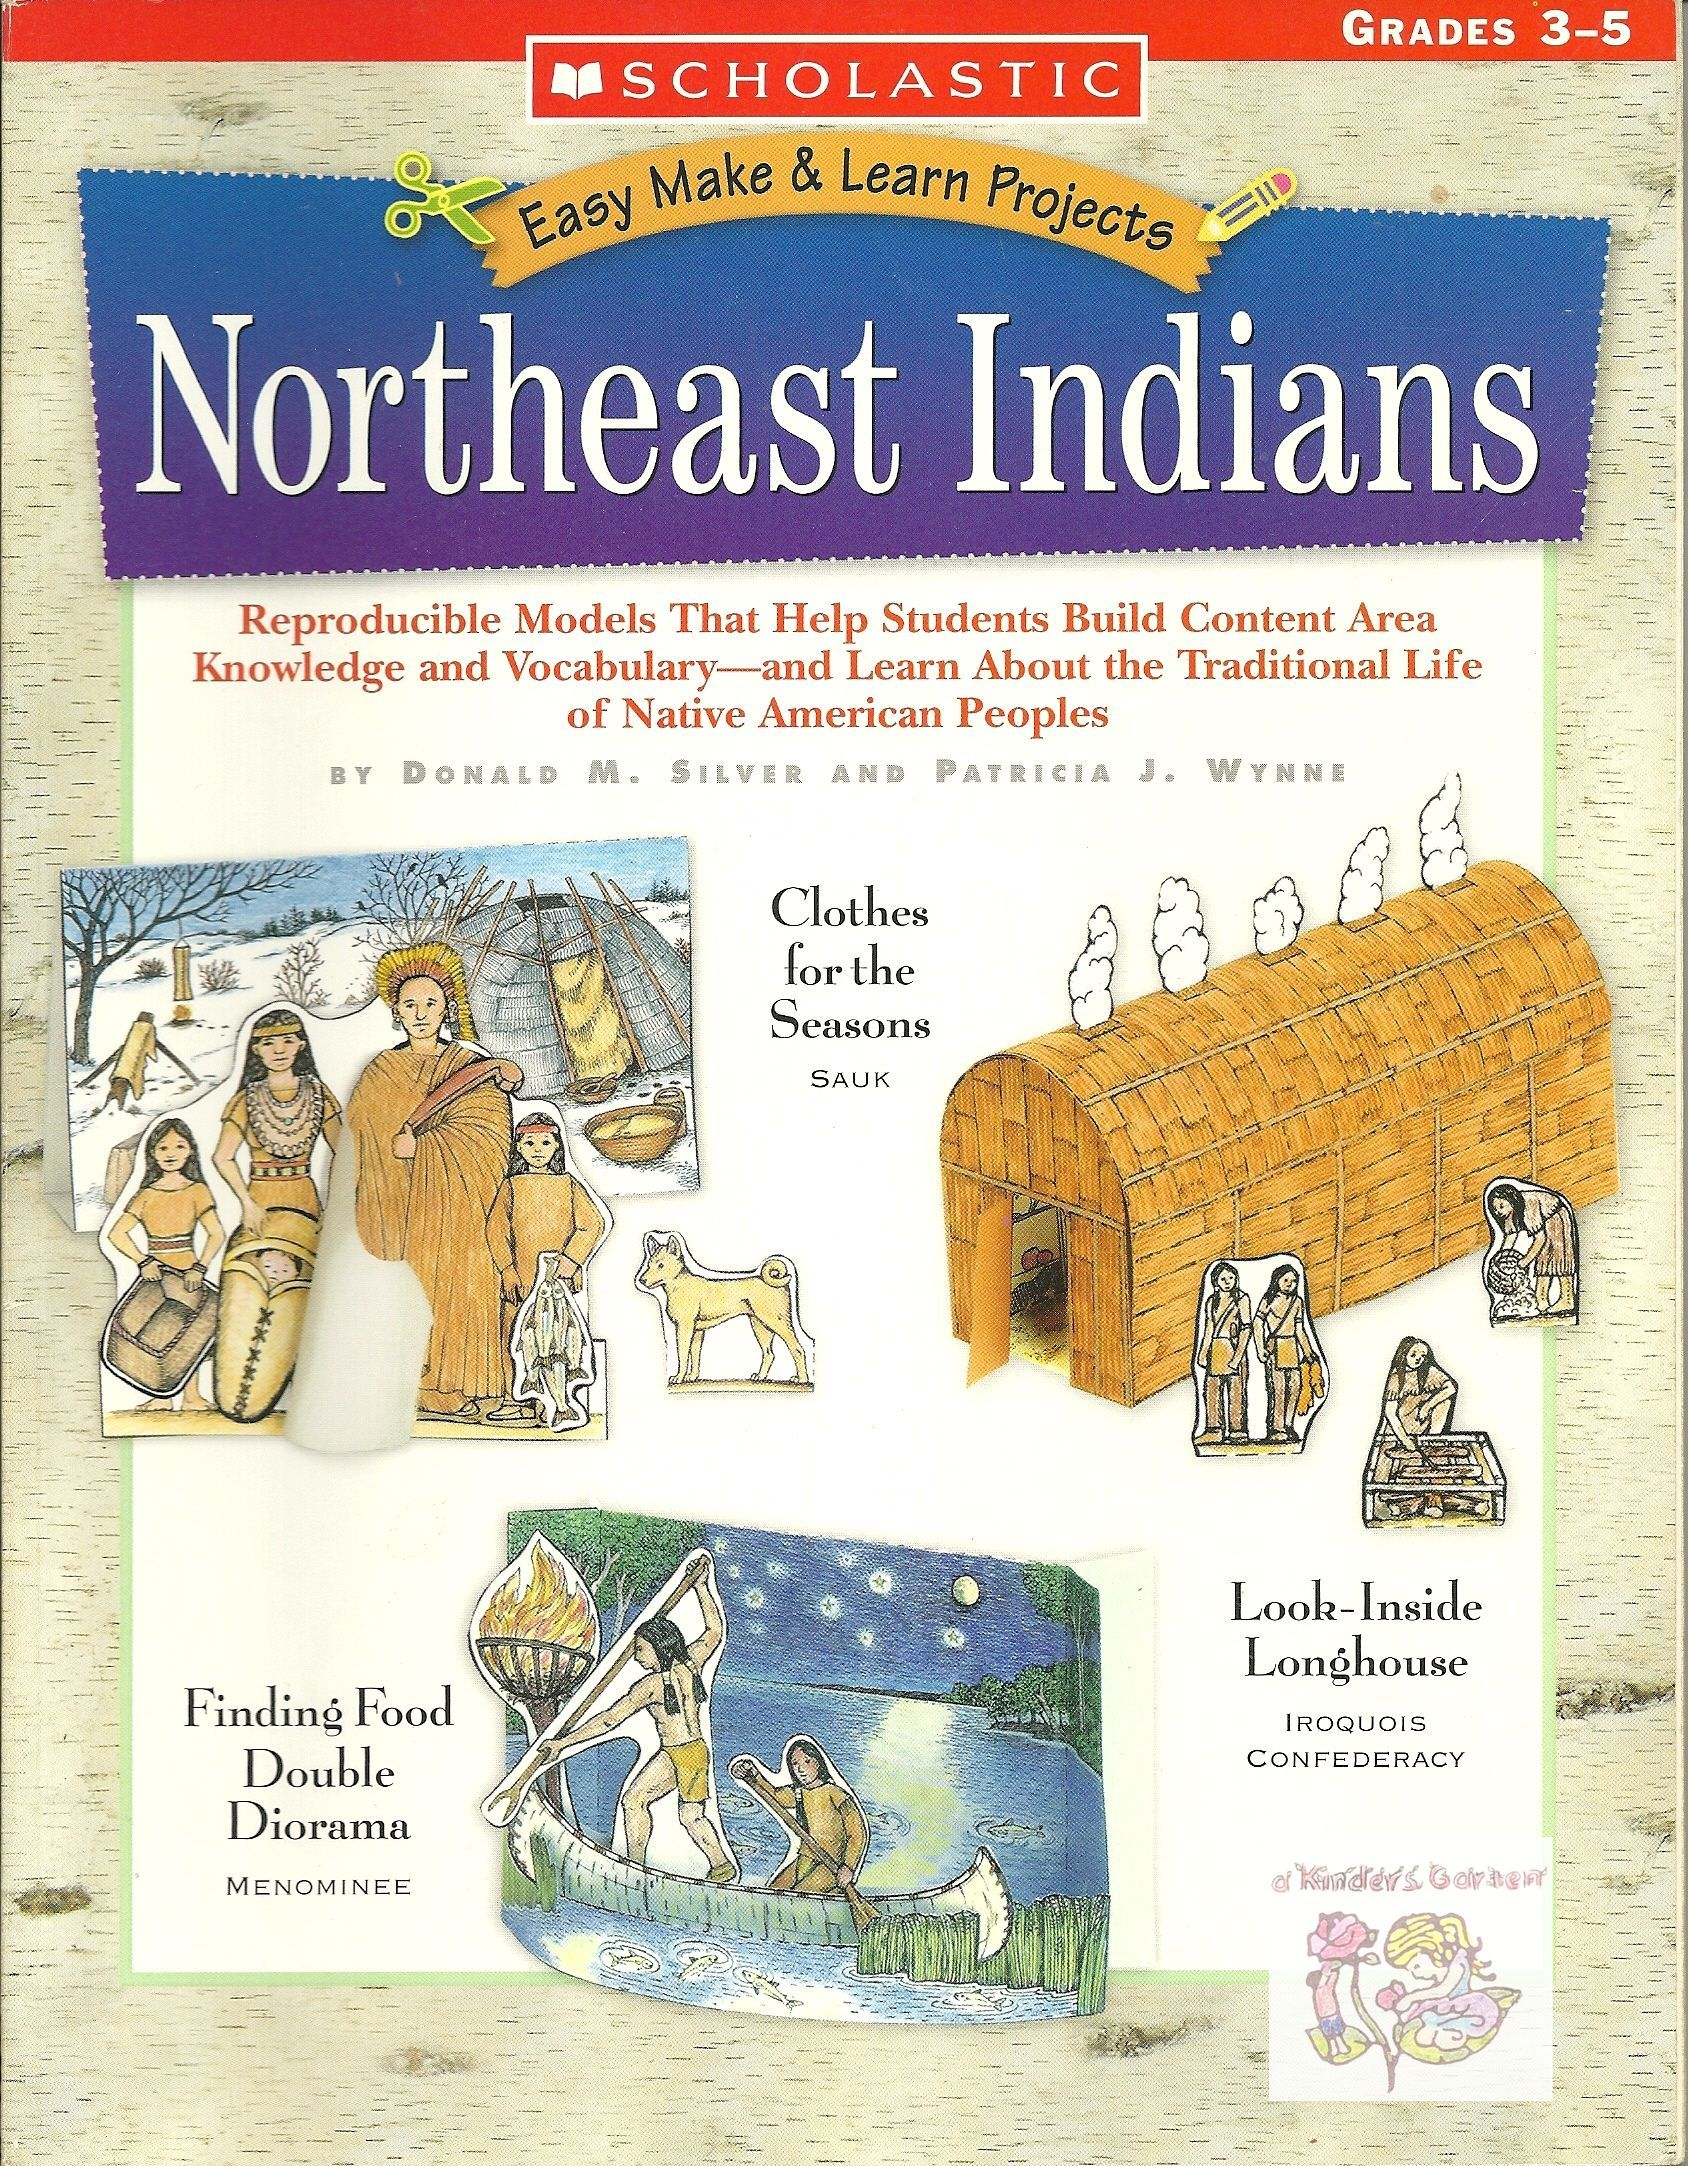 Scholastic Check Out More Of Our Americanindian